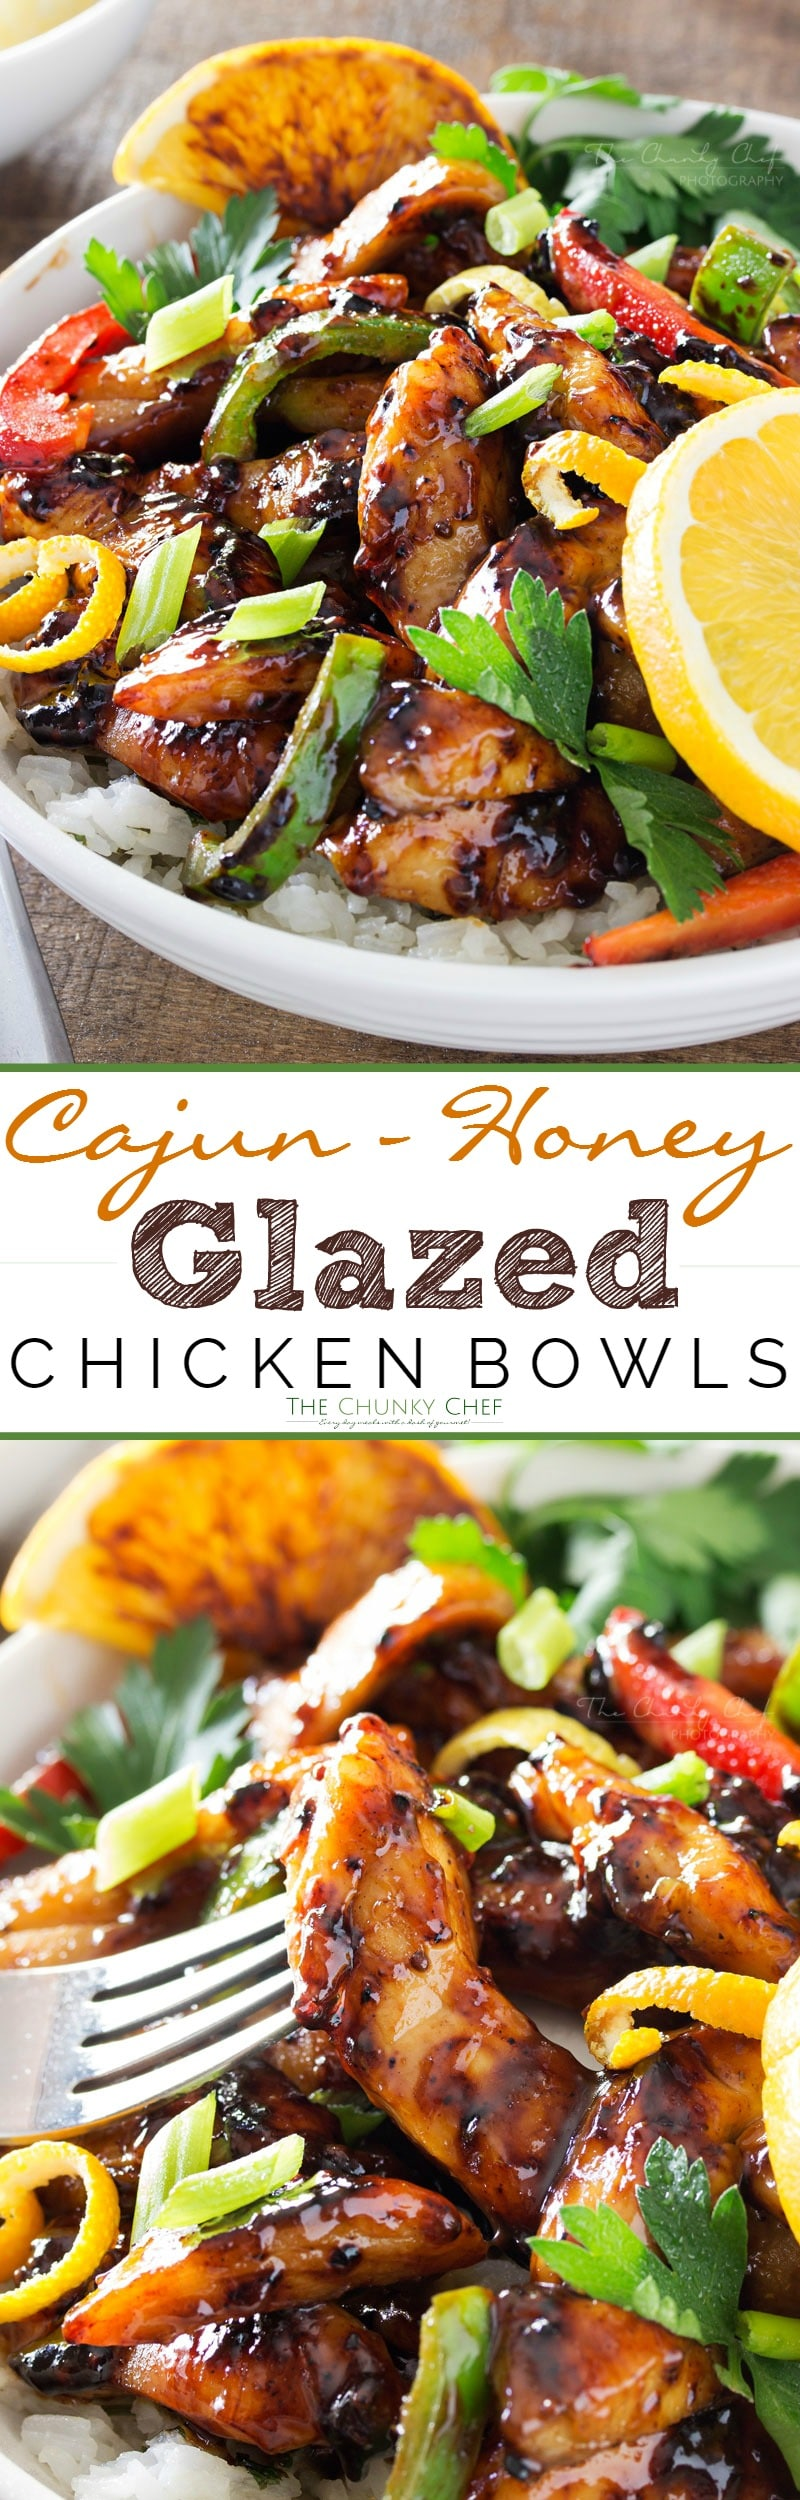 Cajun Honey Glazed Chicken Bowls | This Cajun honey glazed chicken ...